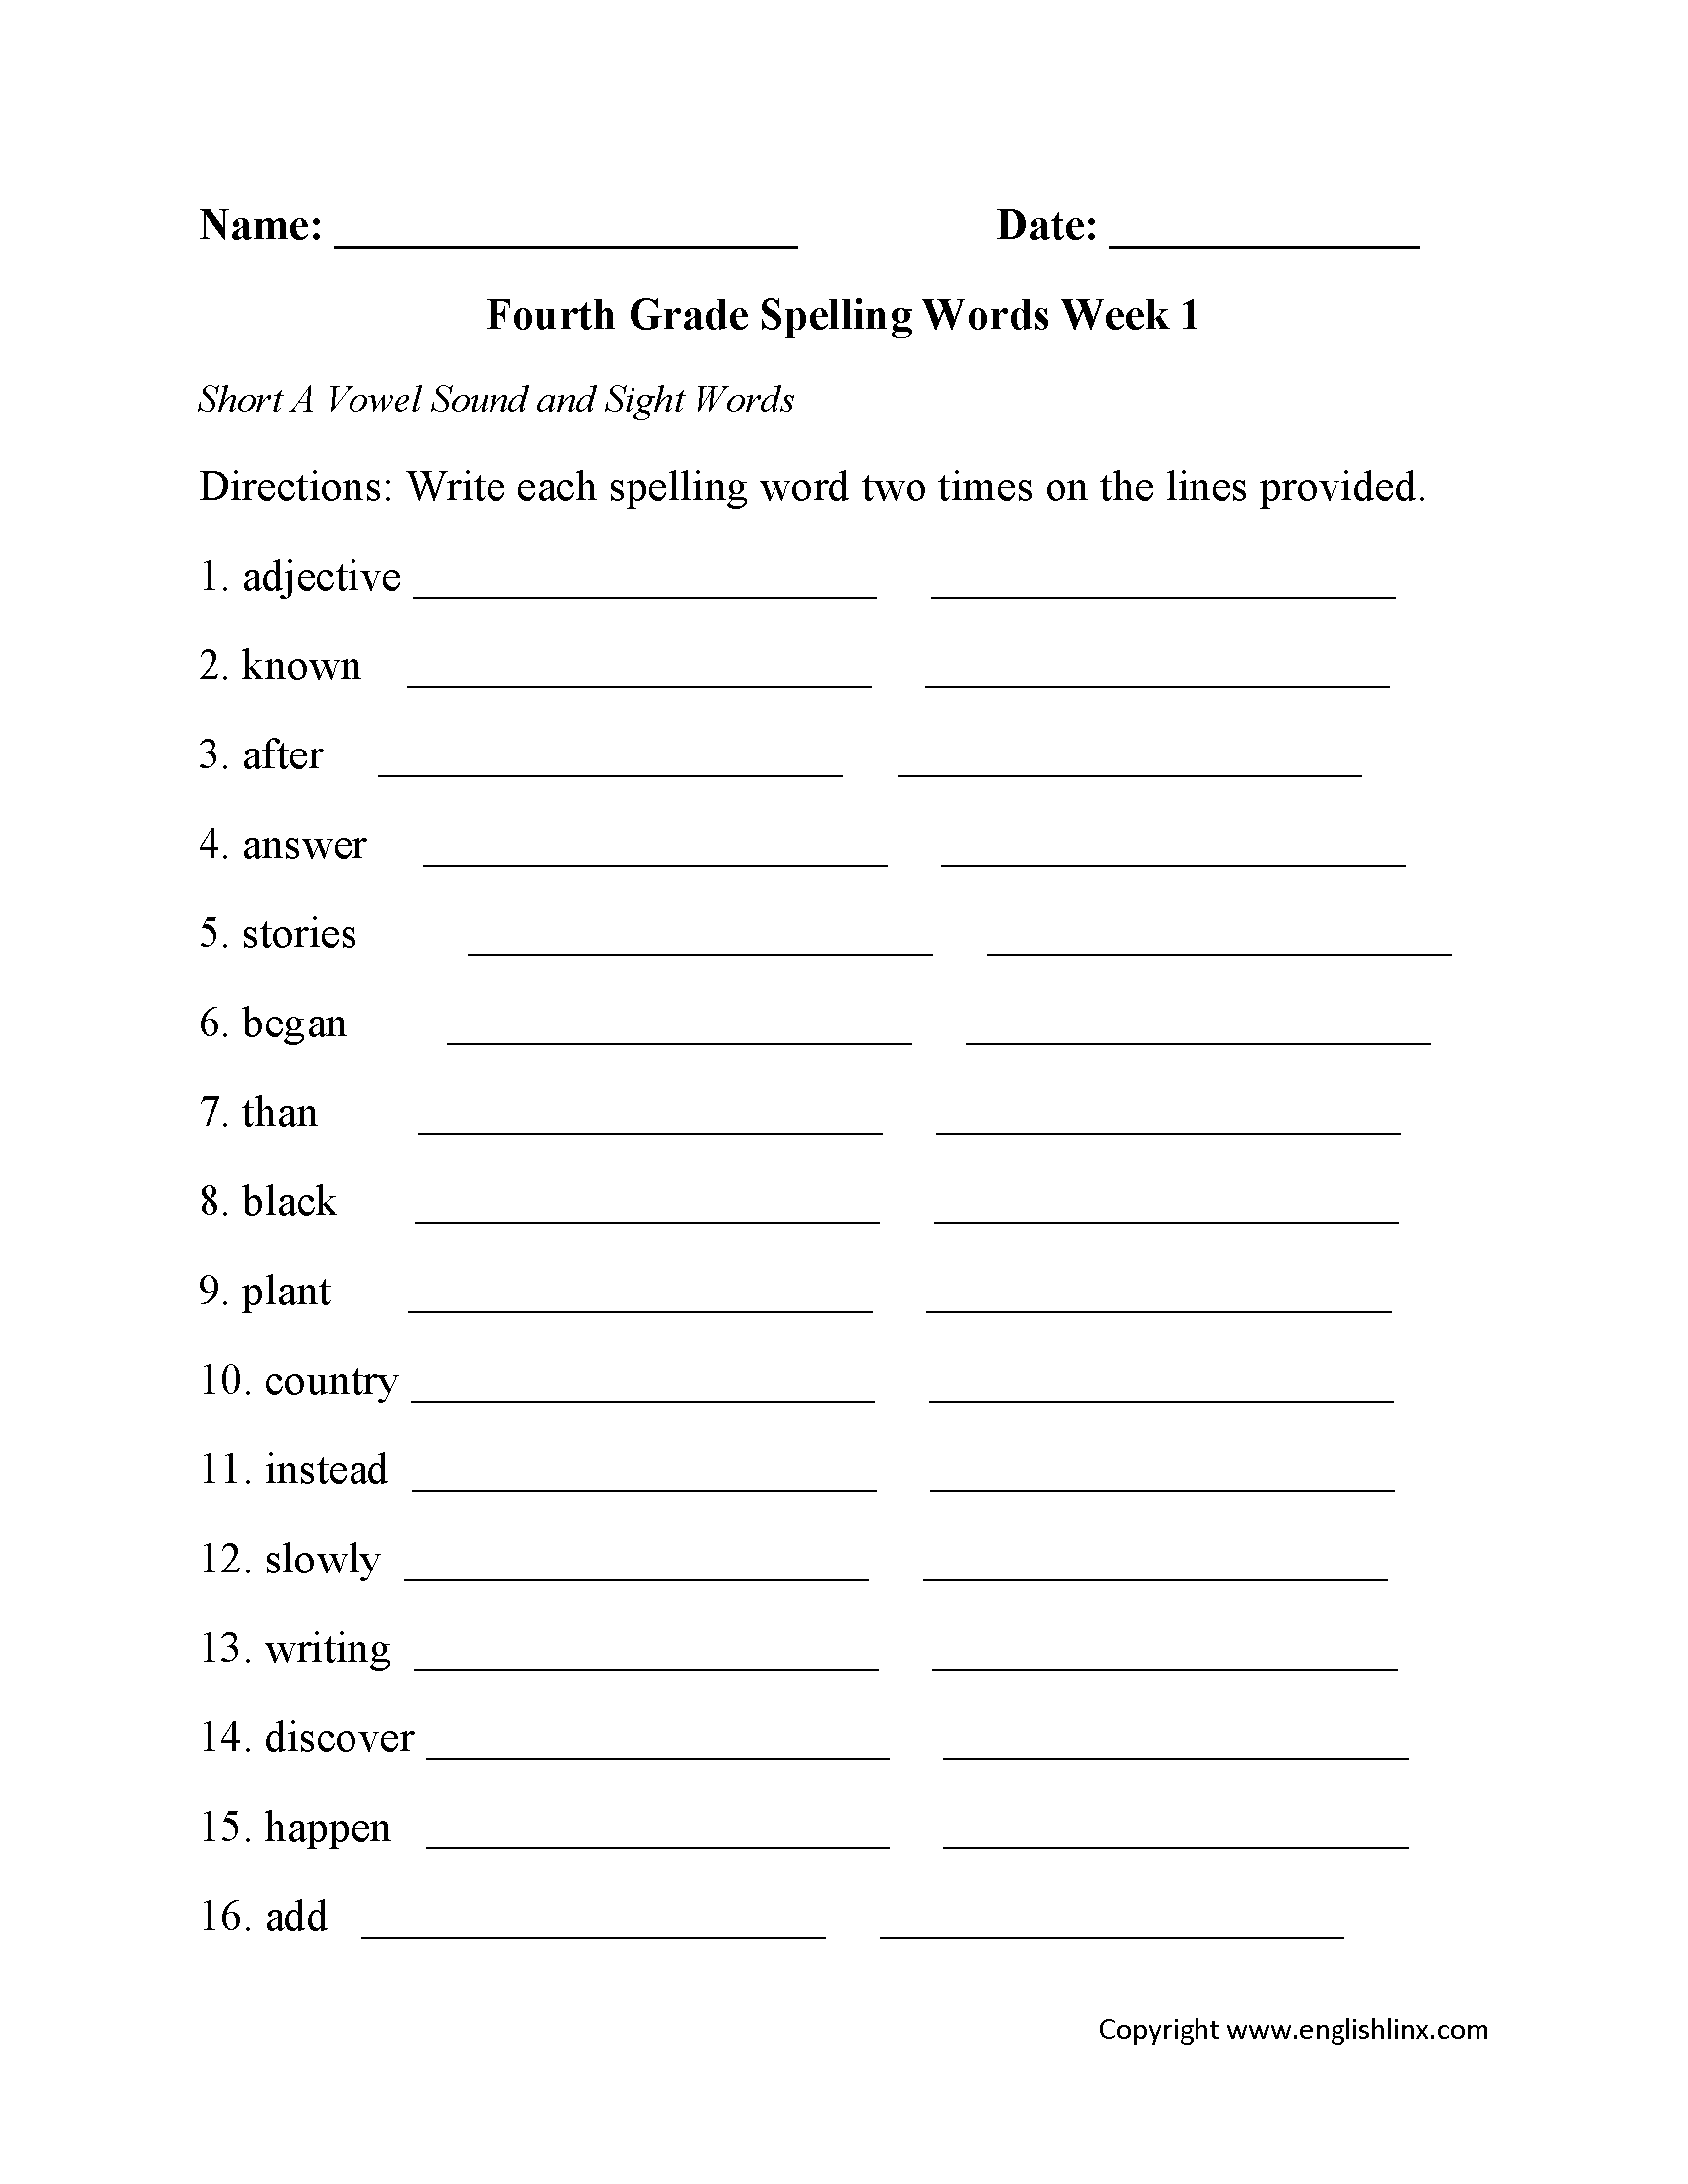 Worksheets 1st Grade Spelling Worksheets spelling worksheets fourth grade worksheets